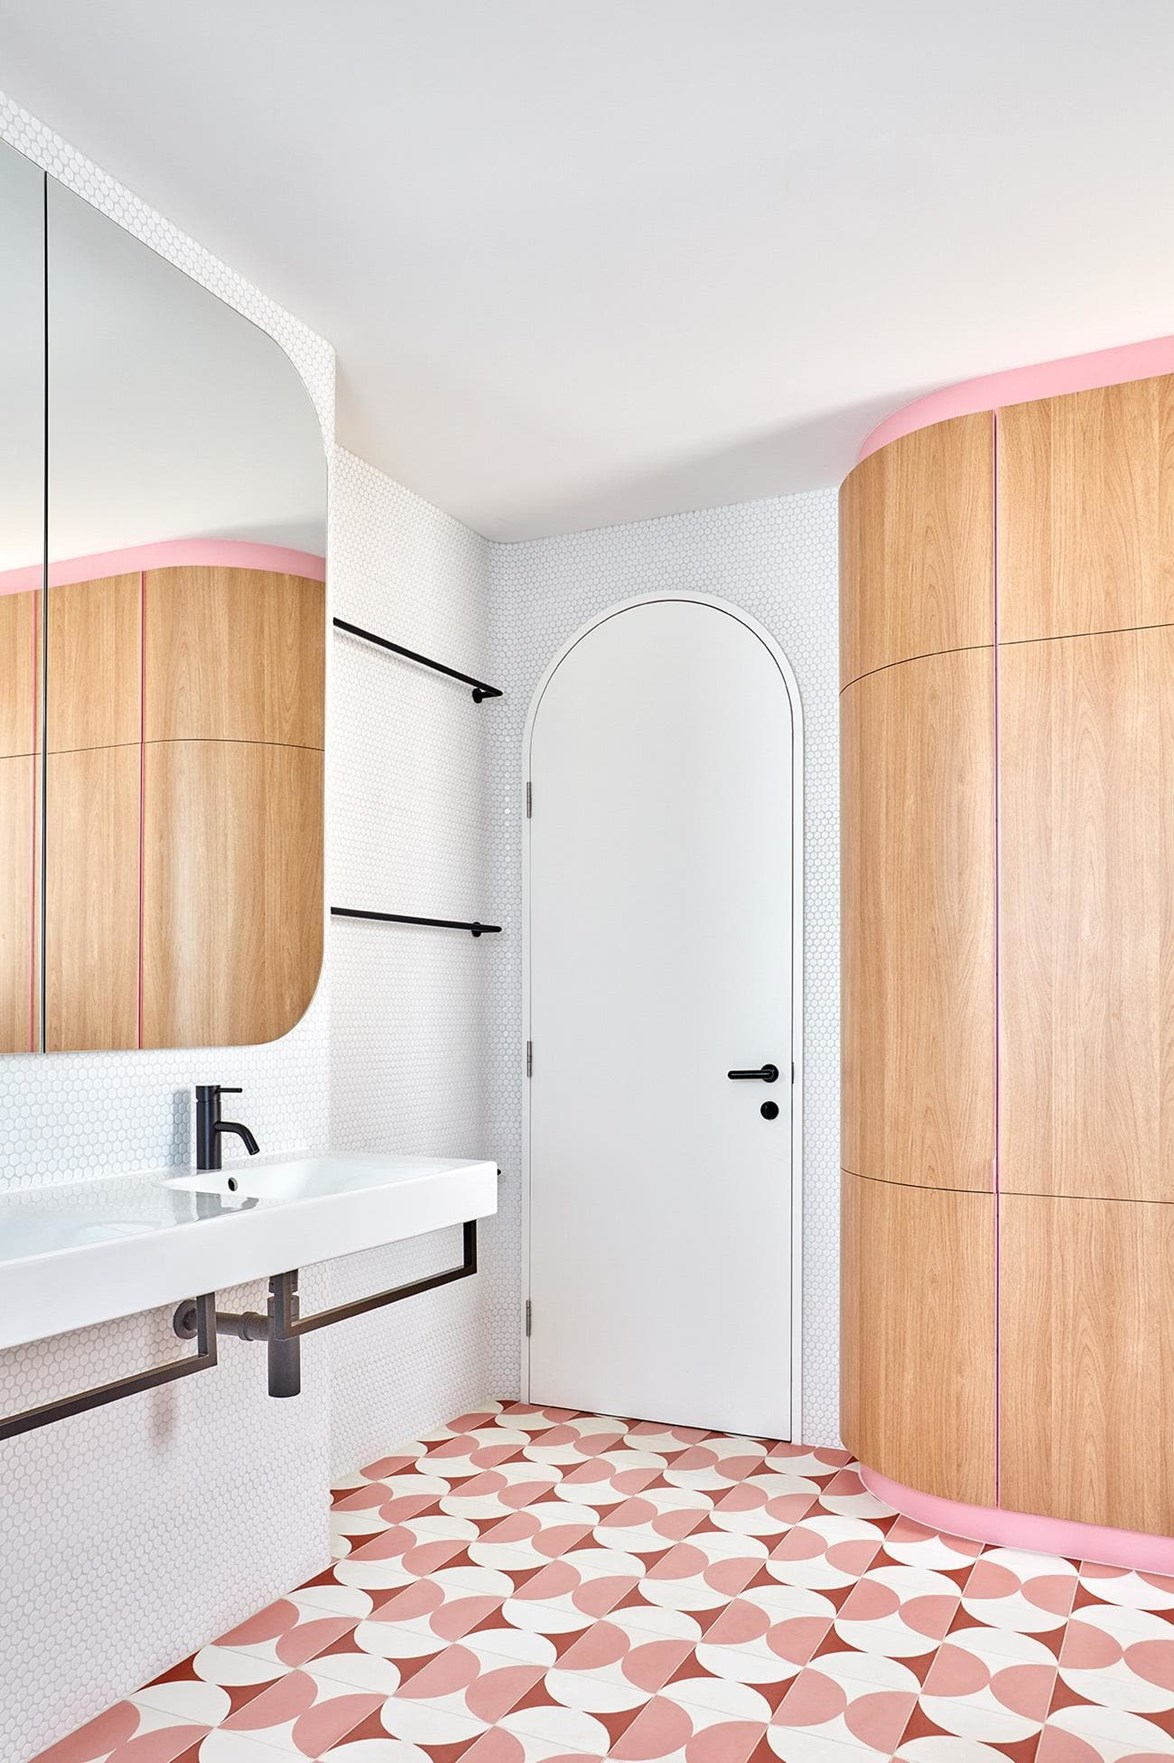 """The bathroom in this [renovated 19th century terrace](https://www.homestolove.com.au/this-renovated-19th-century-terrace-now-has-pastel-pink-floors-and-secret-doors-17195 target=""""_blank"""") features a fresh white canvas embellished with pastel pink, hand-painted encaustic floor tiles and powder pink detailing within the timber cabinetry, giving it a fresh, playful and modern feel. *Project* by Winwood McKenzie   *Photo:* Sean Fennessy"""